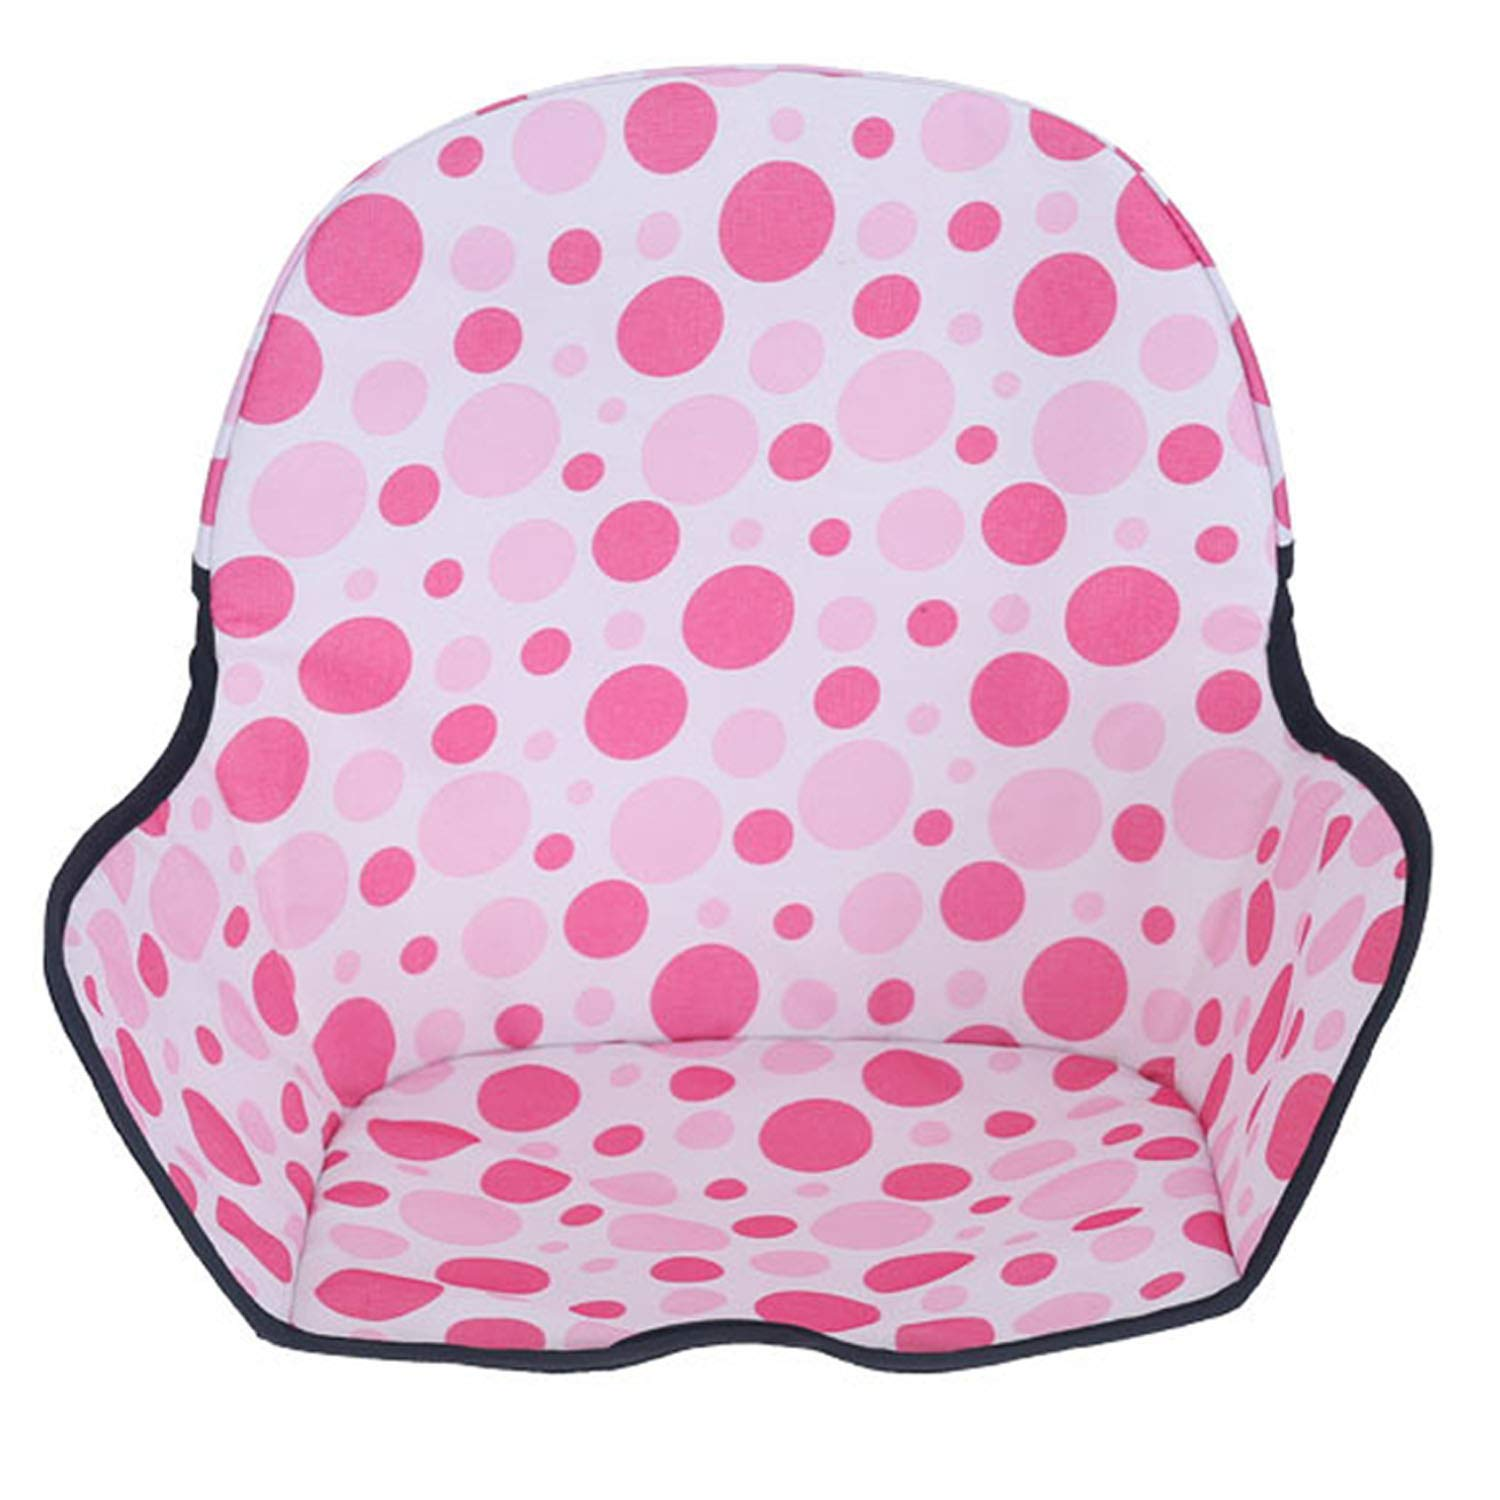 Cute Washable Folding Baby Children High Chair Seat Cushion Mat Pad Cover Protector Infant Toddlers Feeding Chair Supplies Blue Gosear